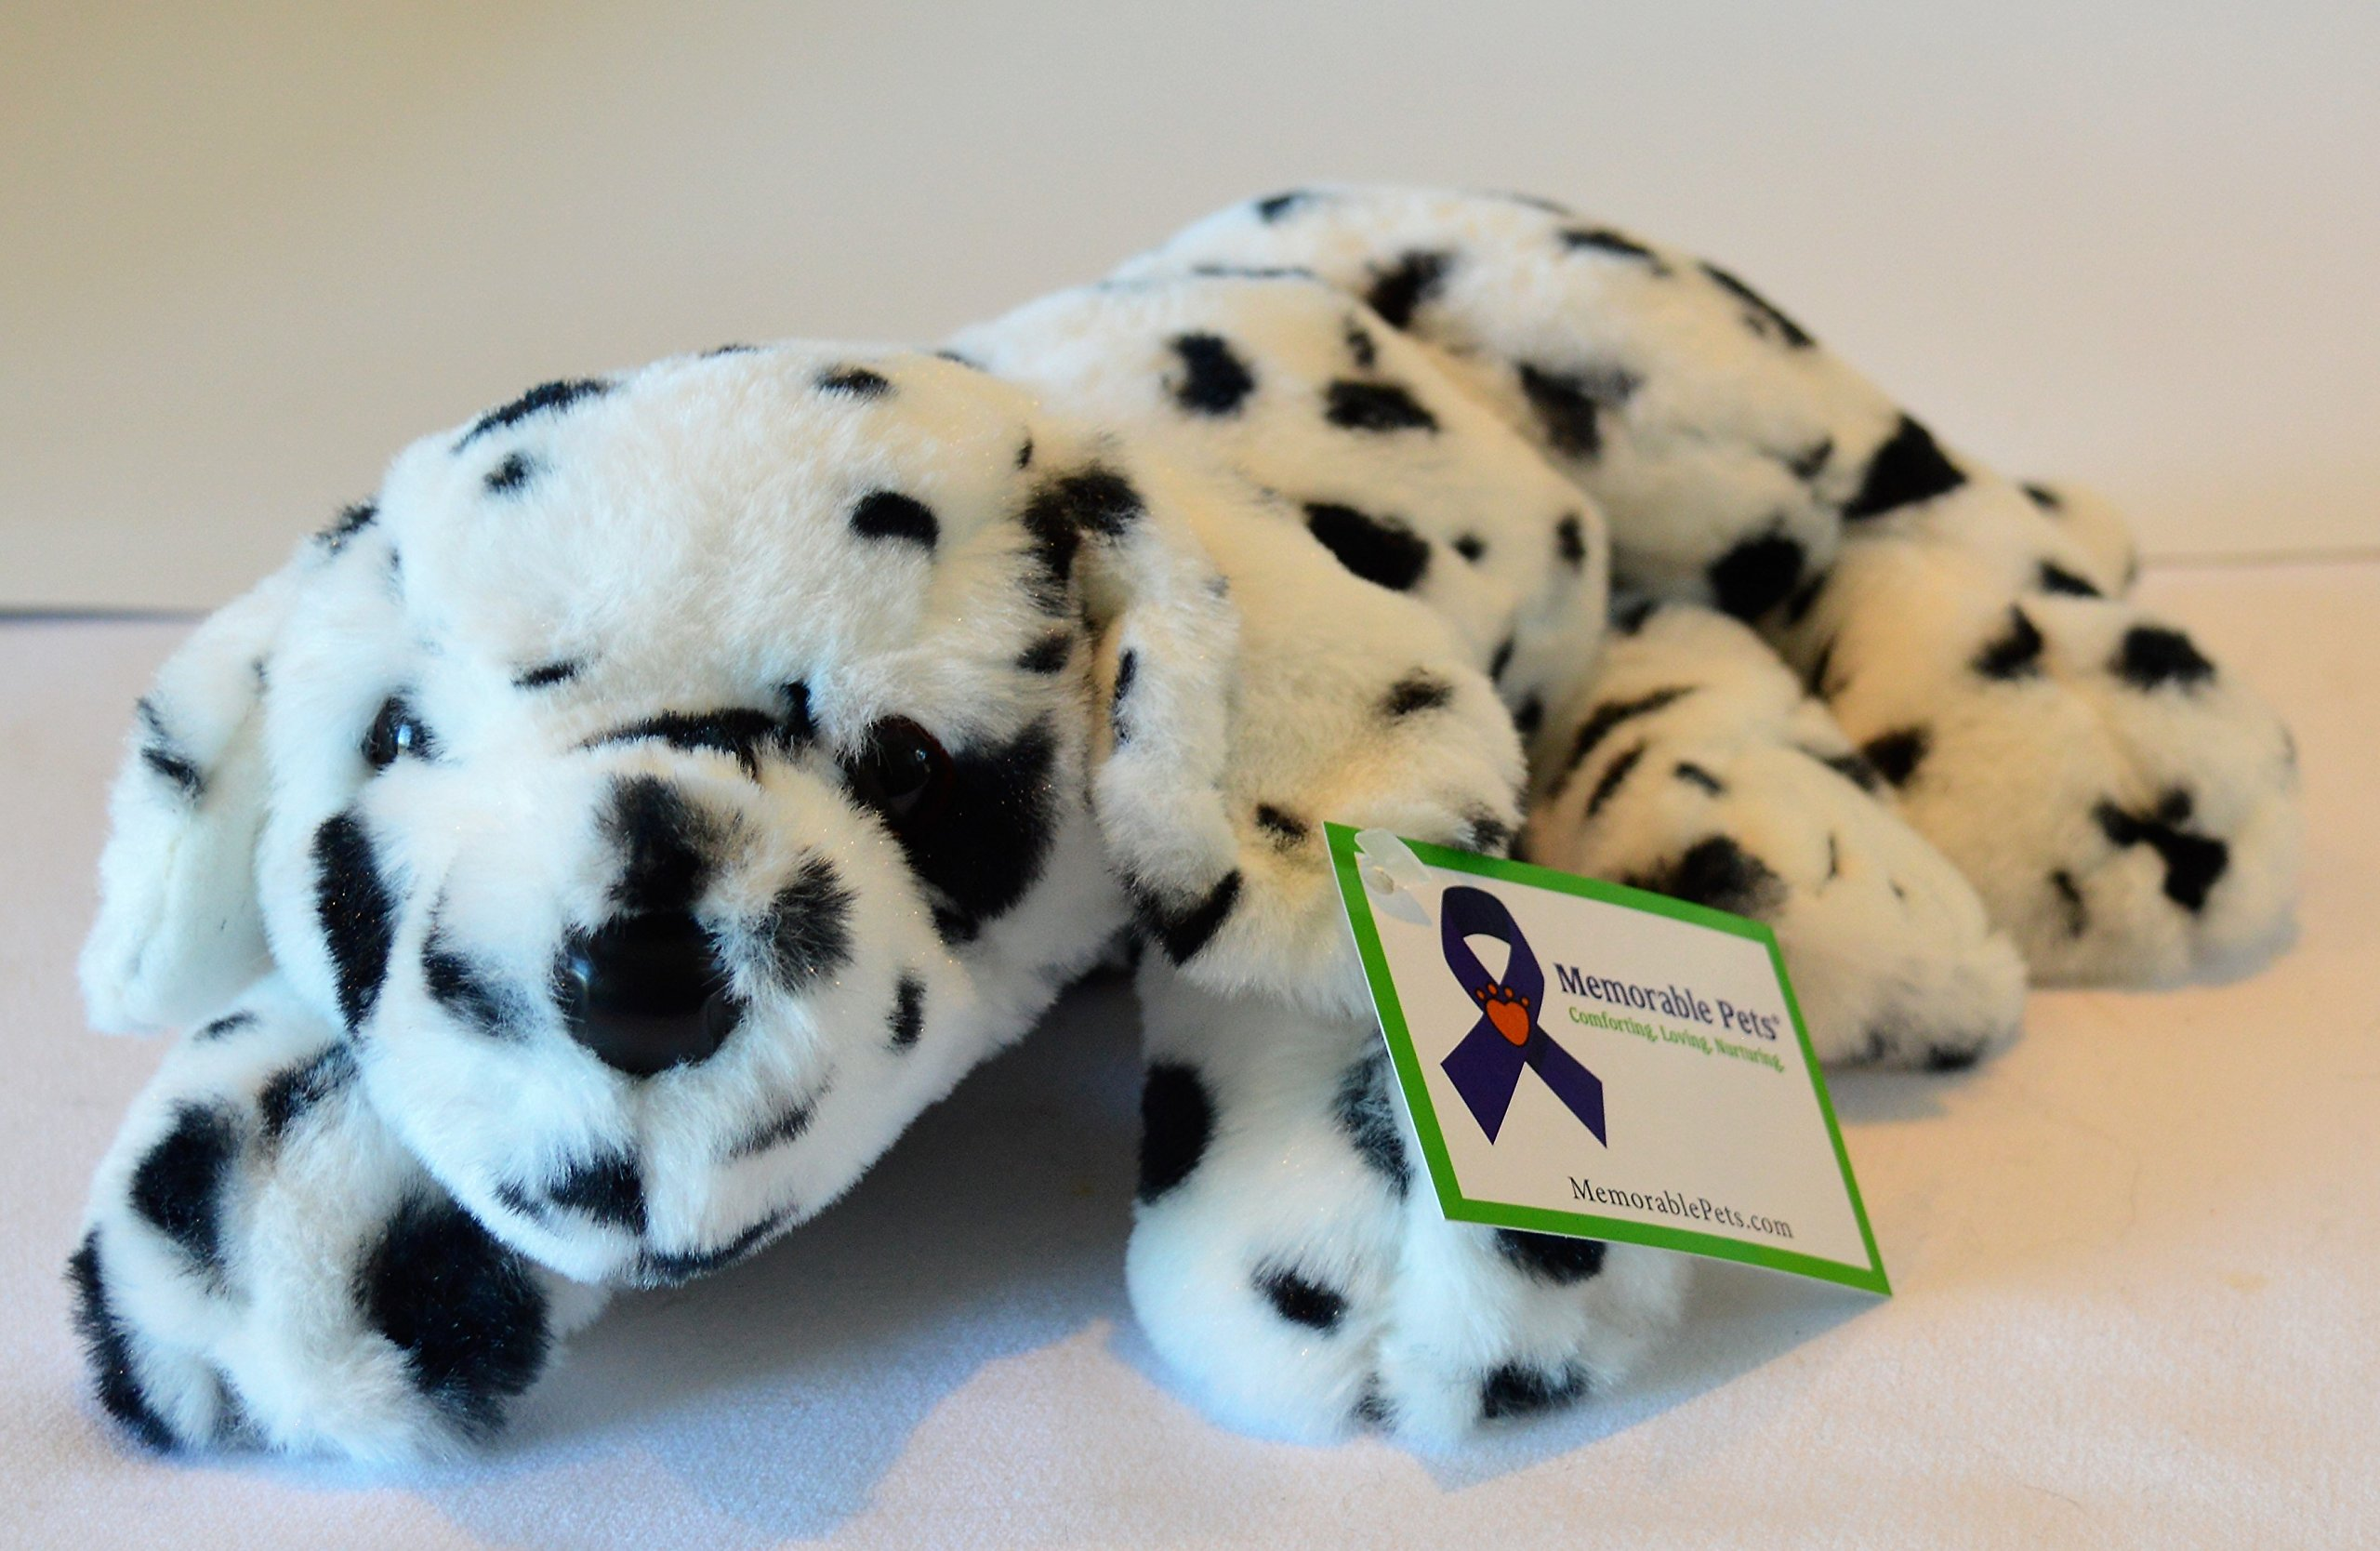 Reclining Dalmatian Puppy - Stuffed Animal Therapy for People with Memory Loss from Aging and Caregivers